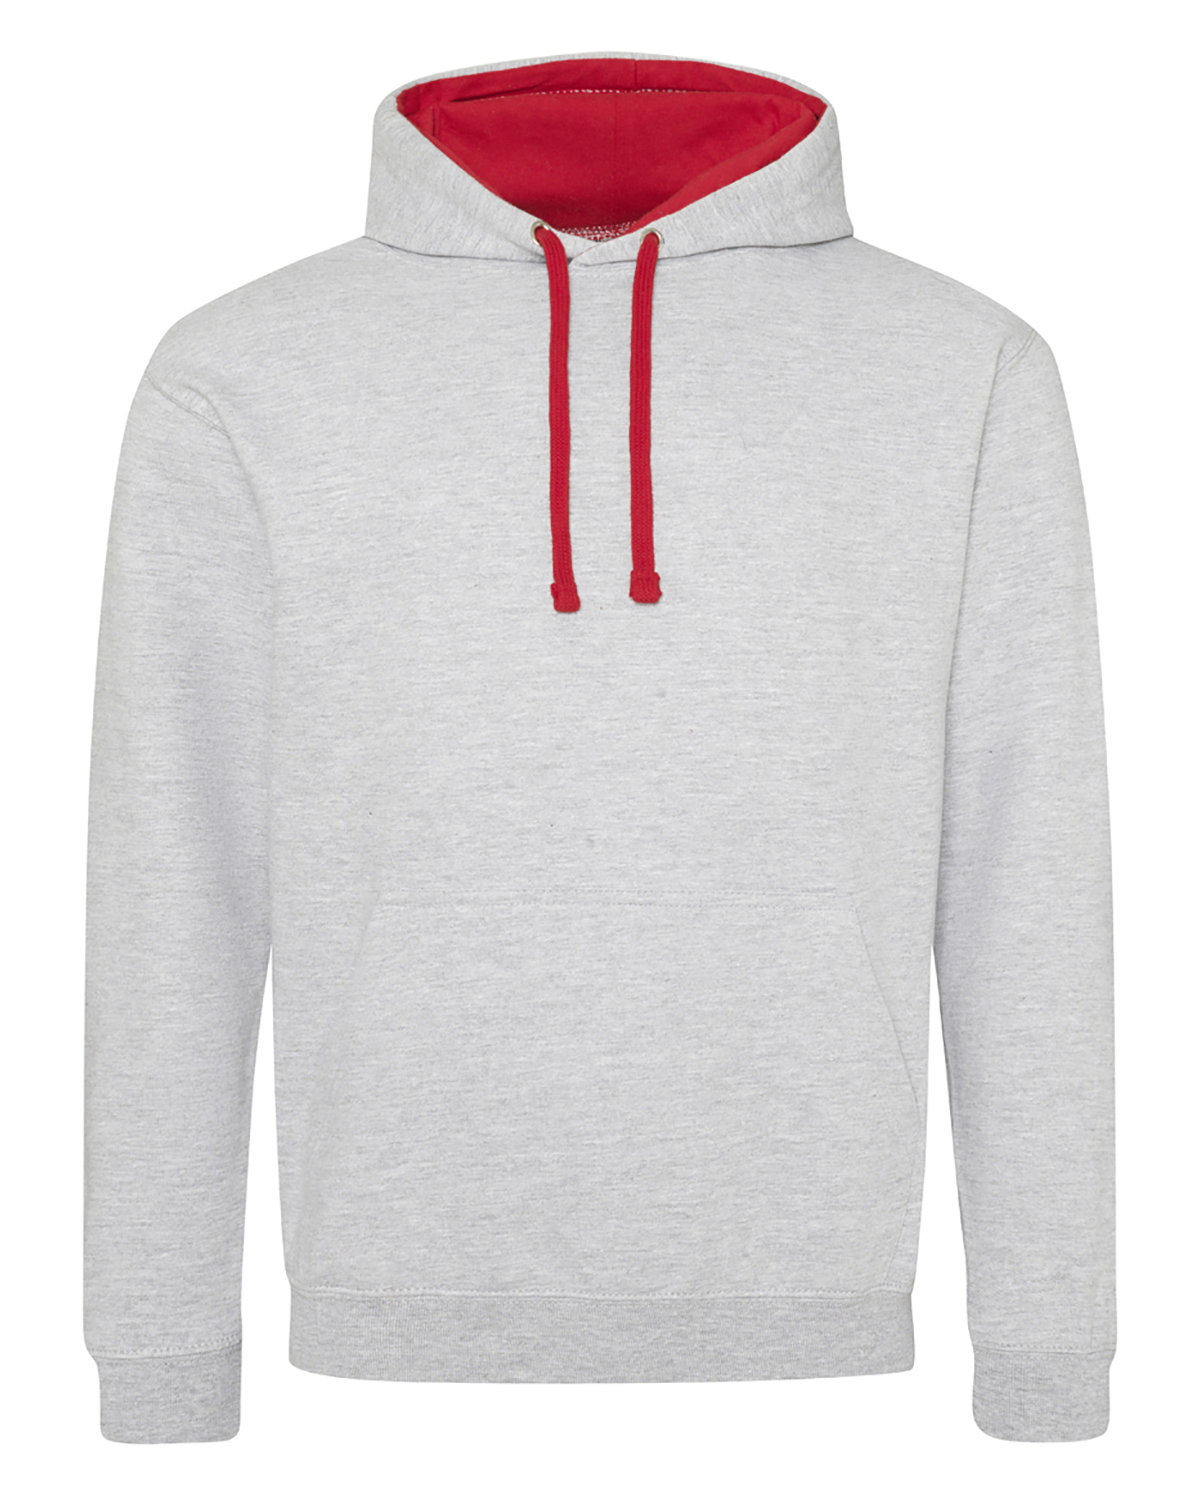 Just Hoods By AWDis Adult 80/20 Midweight Varsity Contrast Hooded Sweatshirt HTH GRY/ FIRE RD